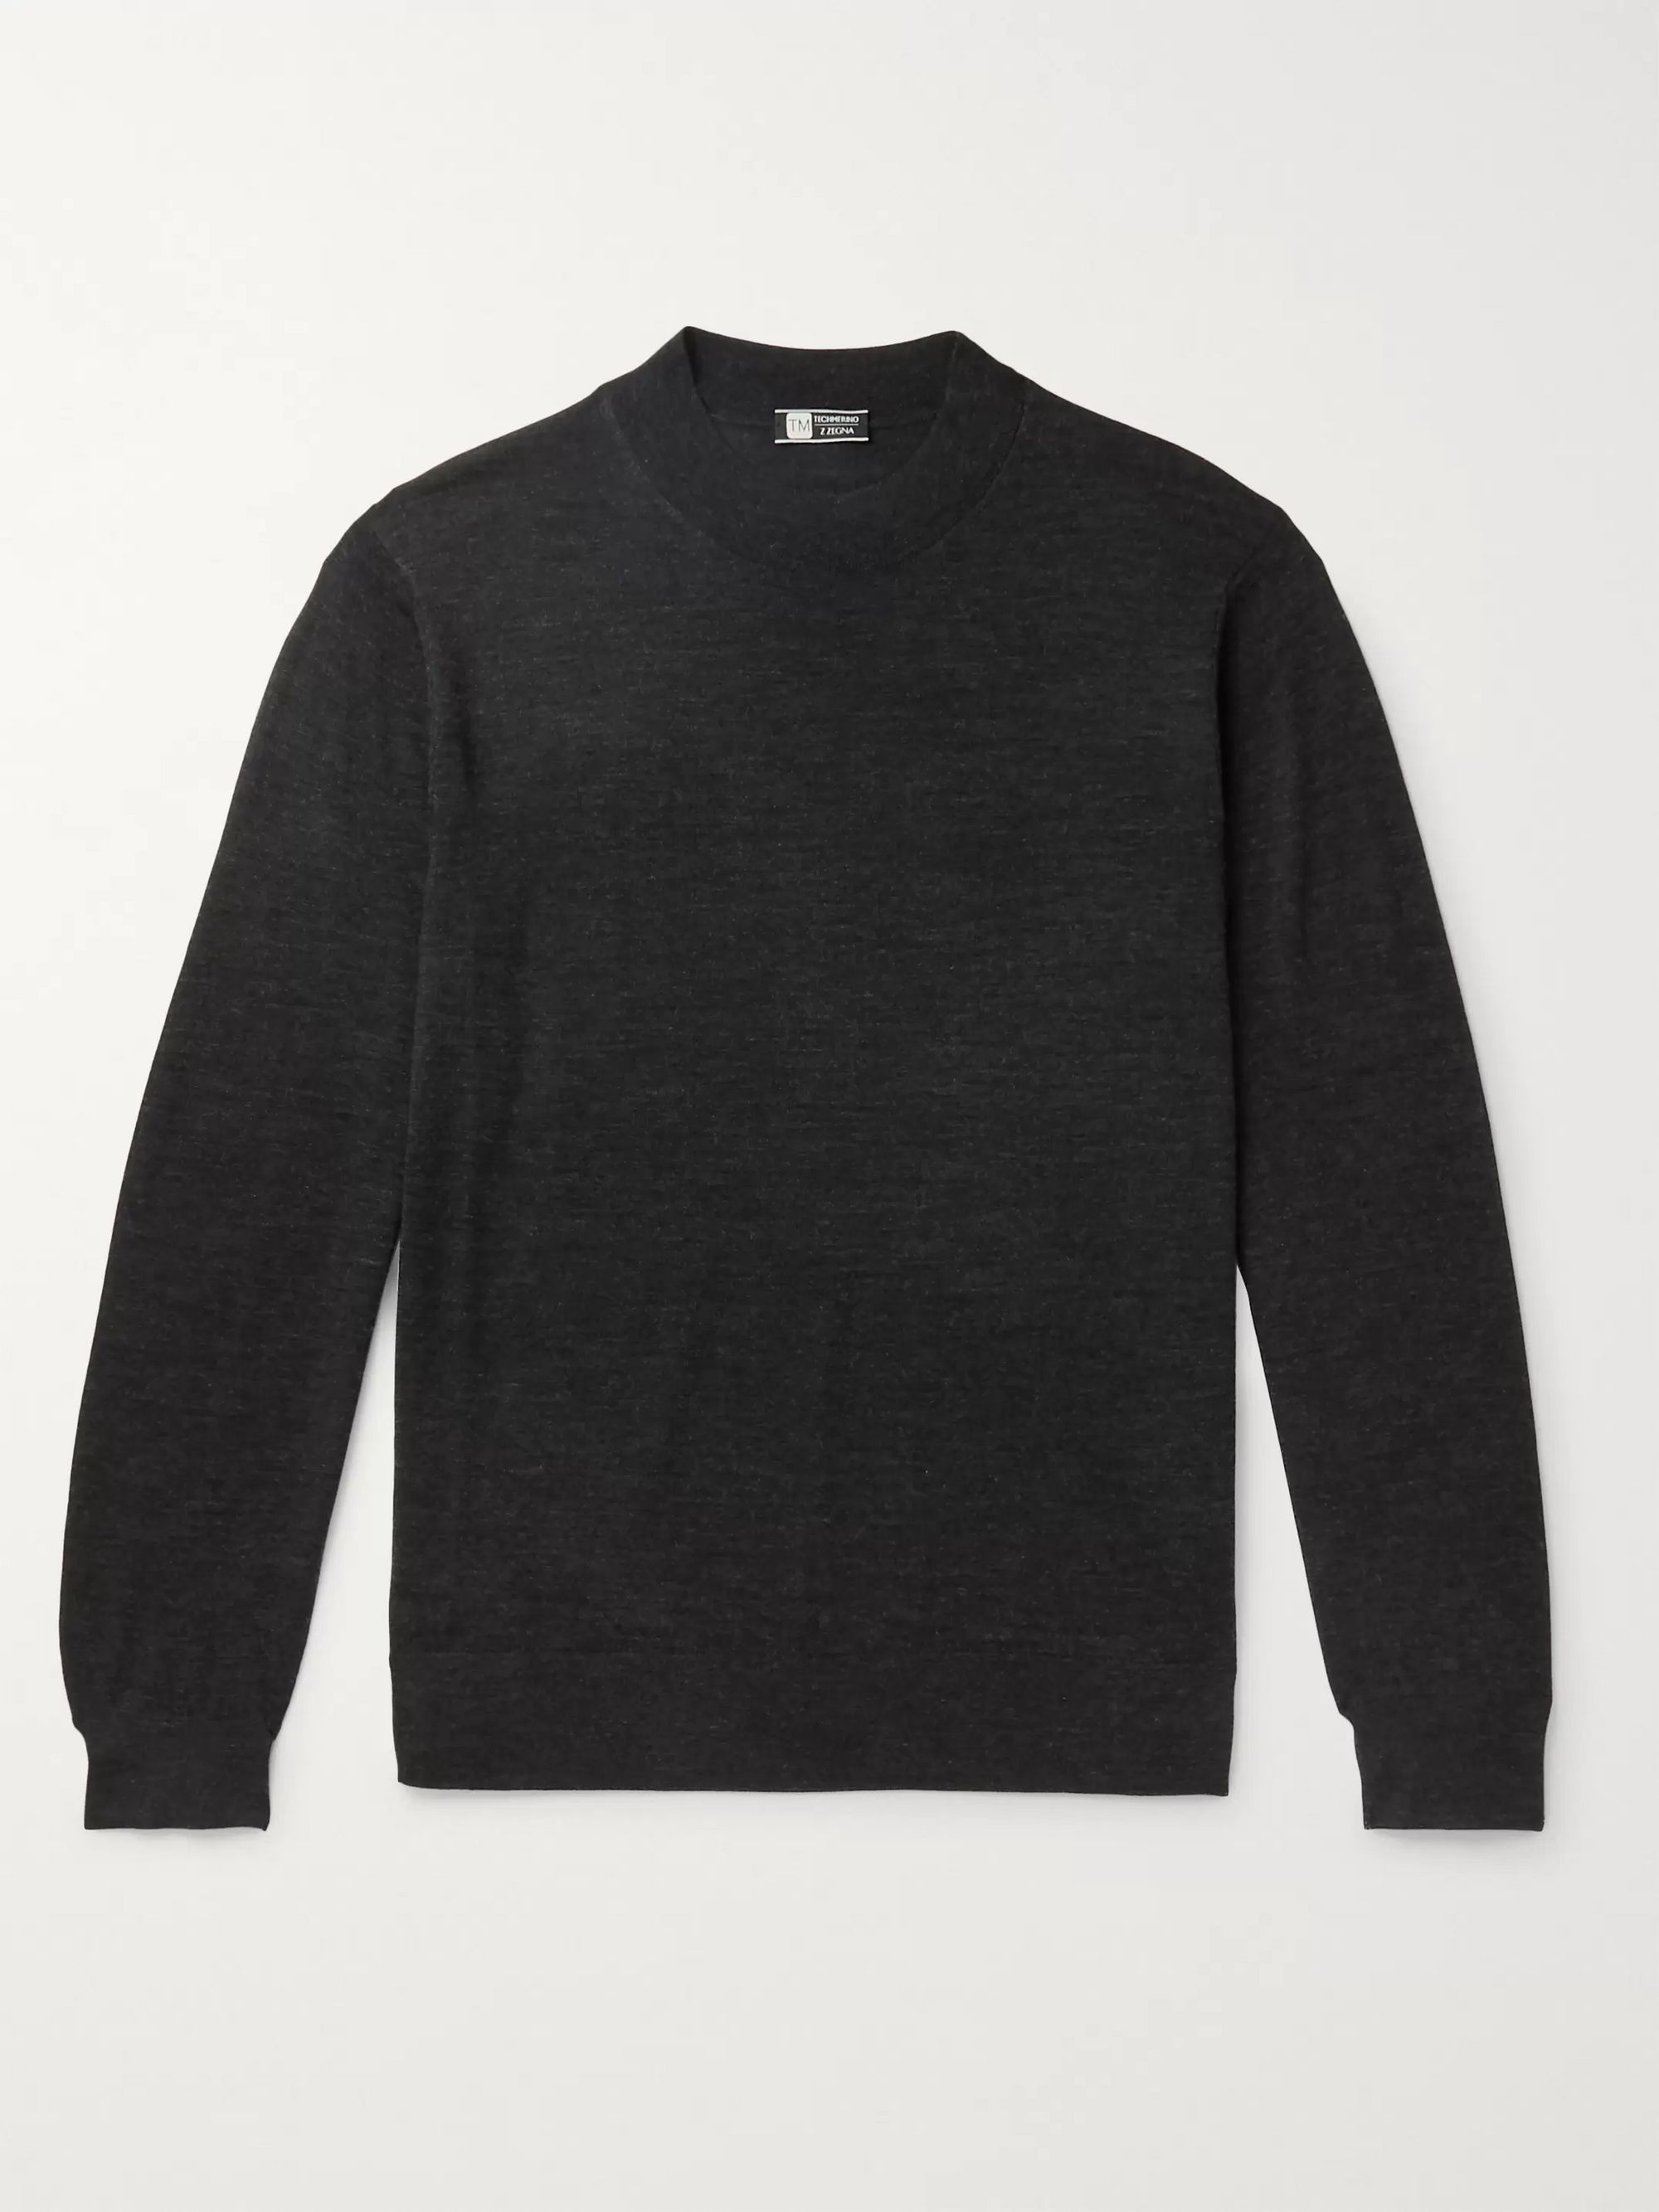 Z Zegna TECHMERINO Wool Mock-Neck Sweater